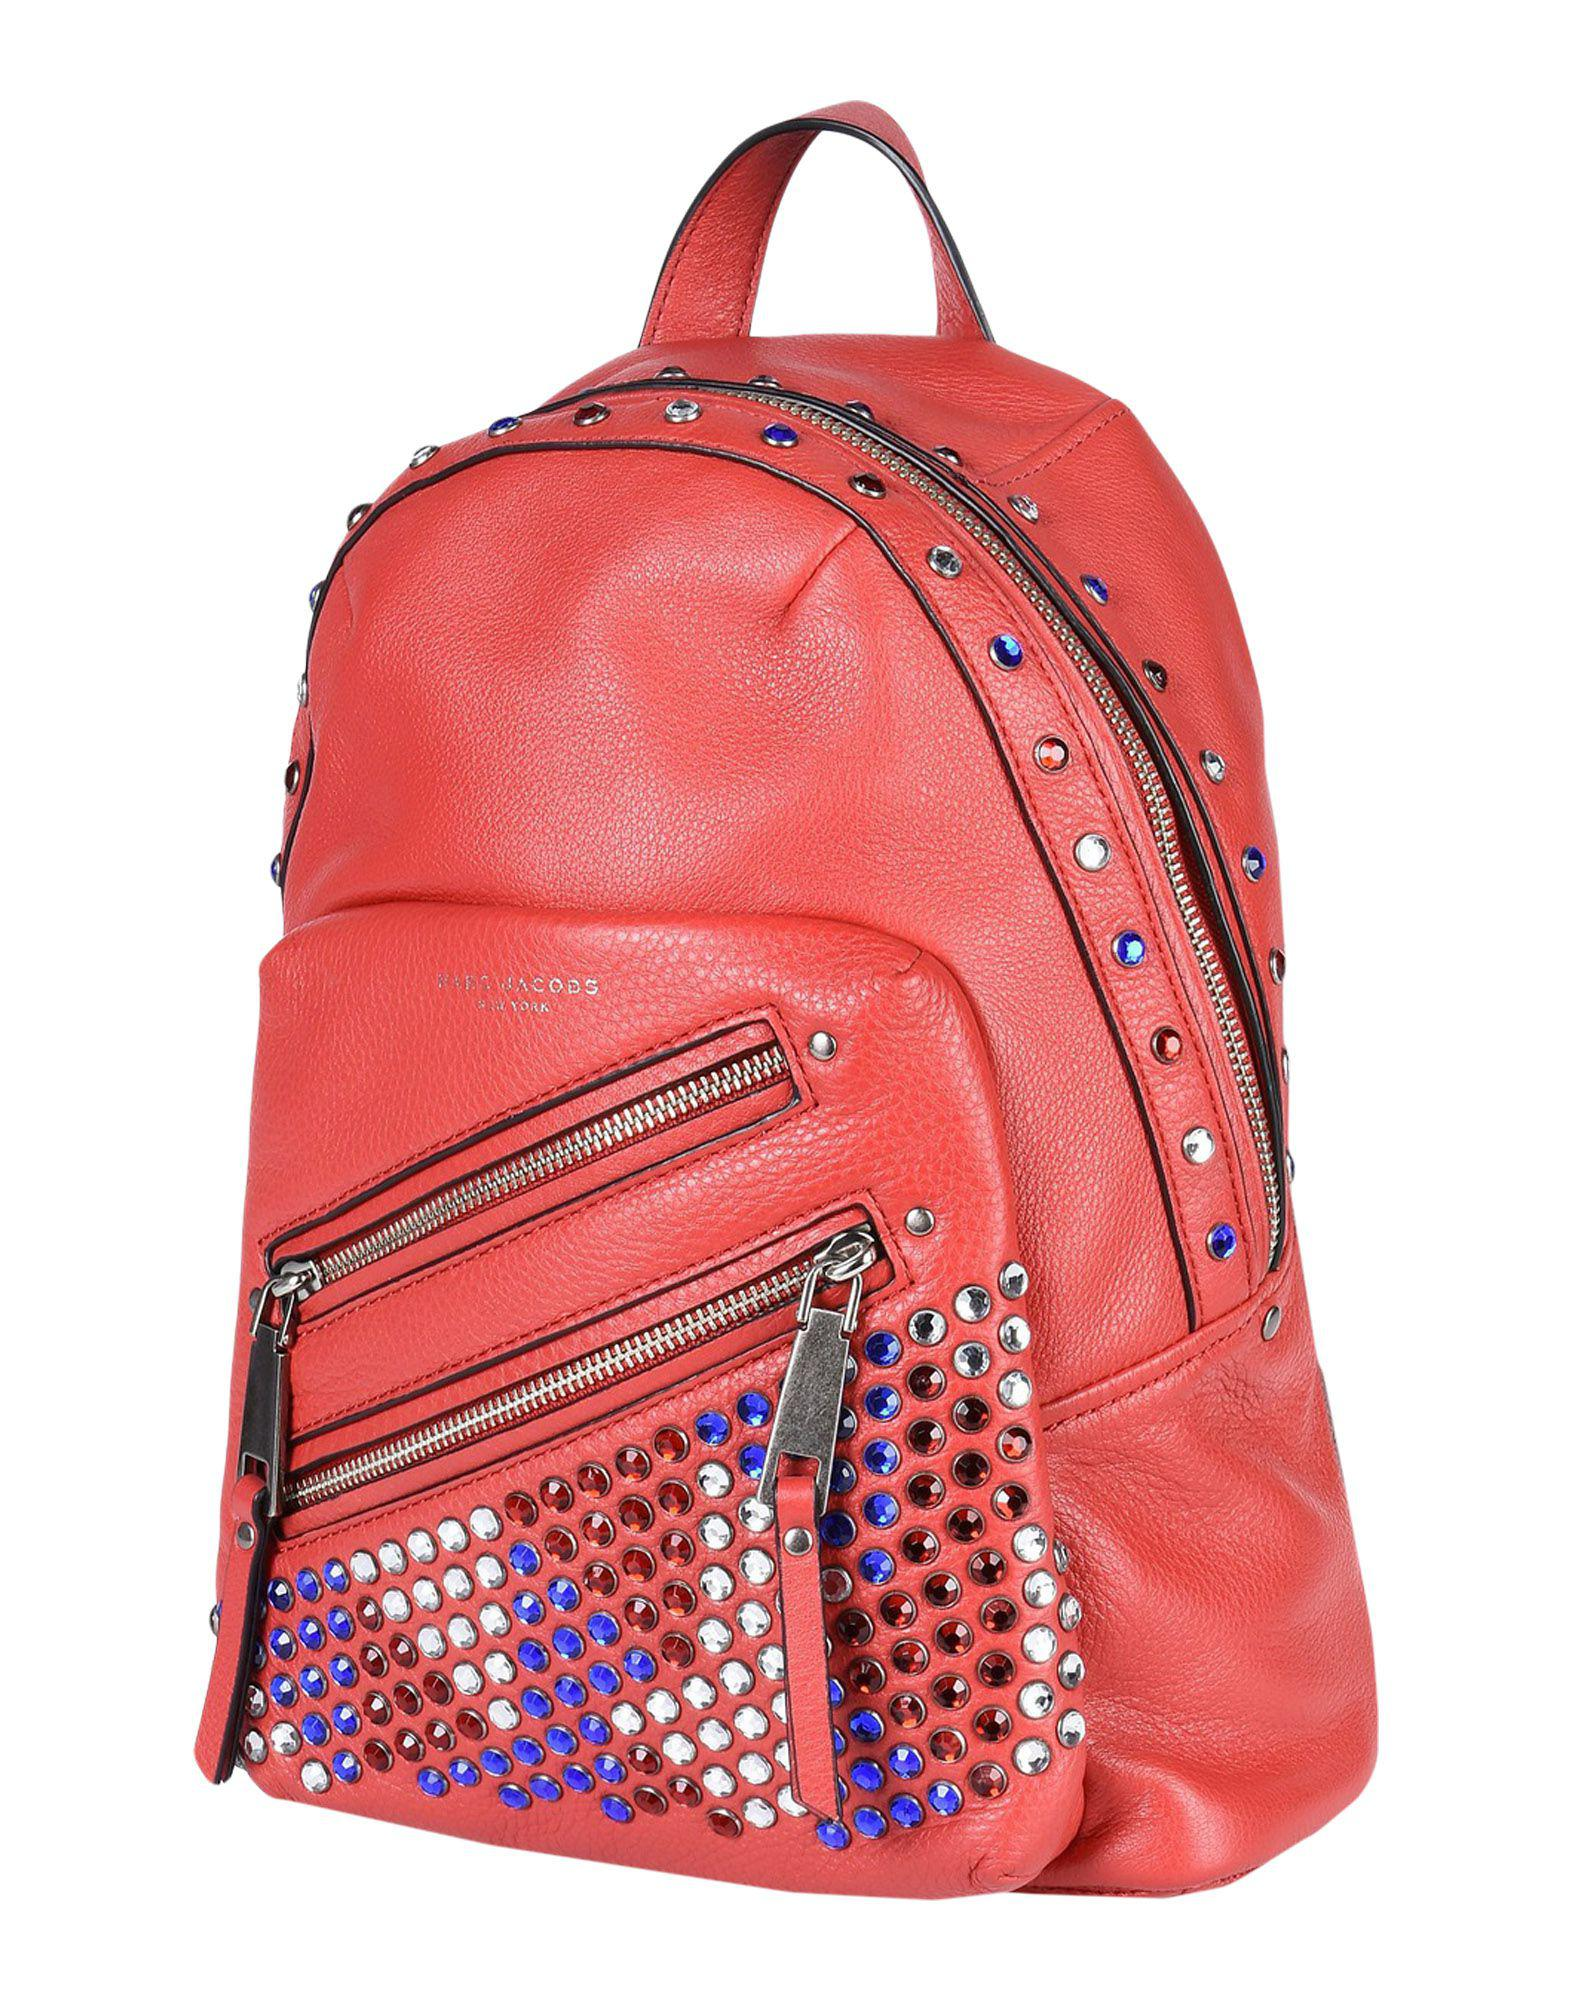 BAGS - Backpacks & Bum bags Marc Jacobs oBQOPH